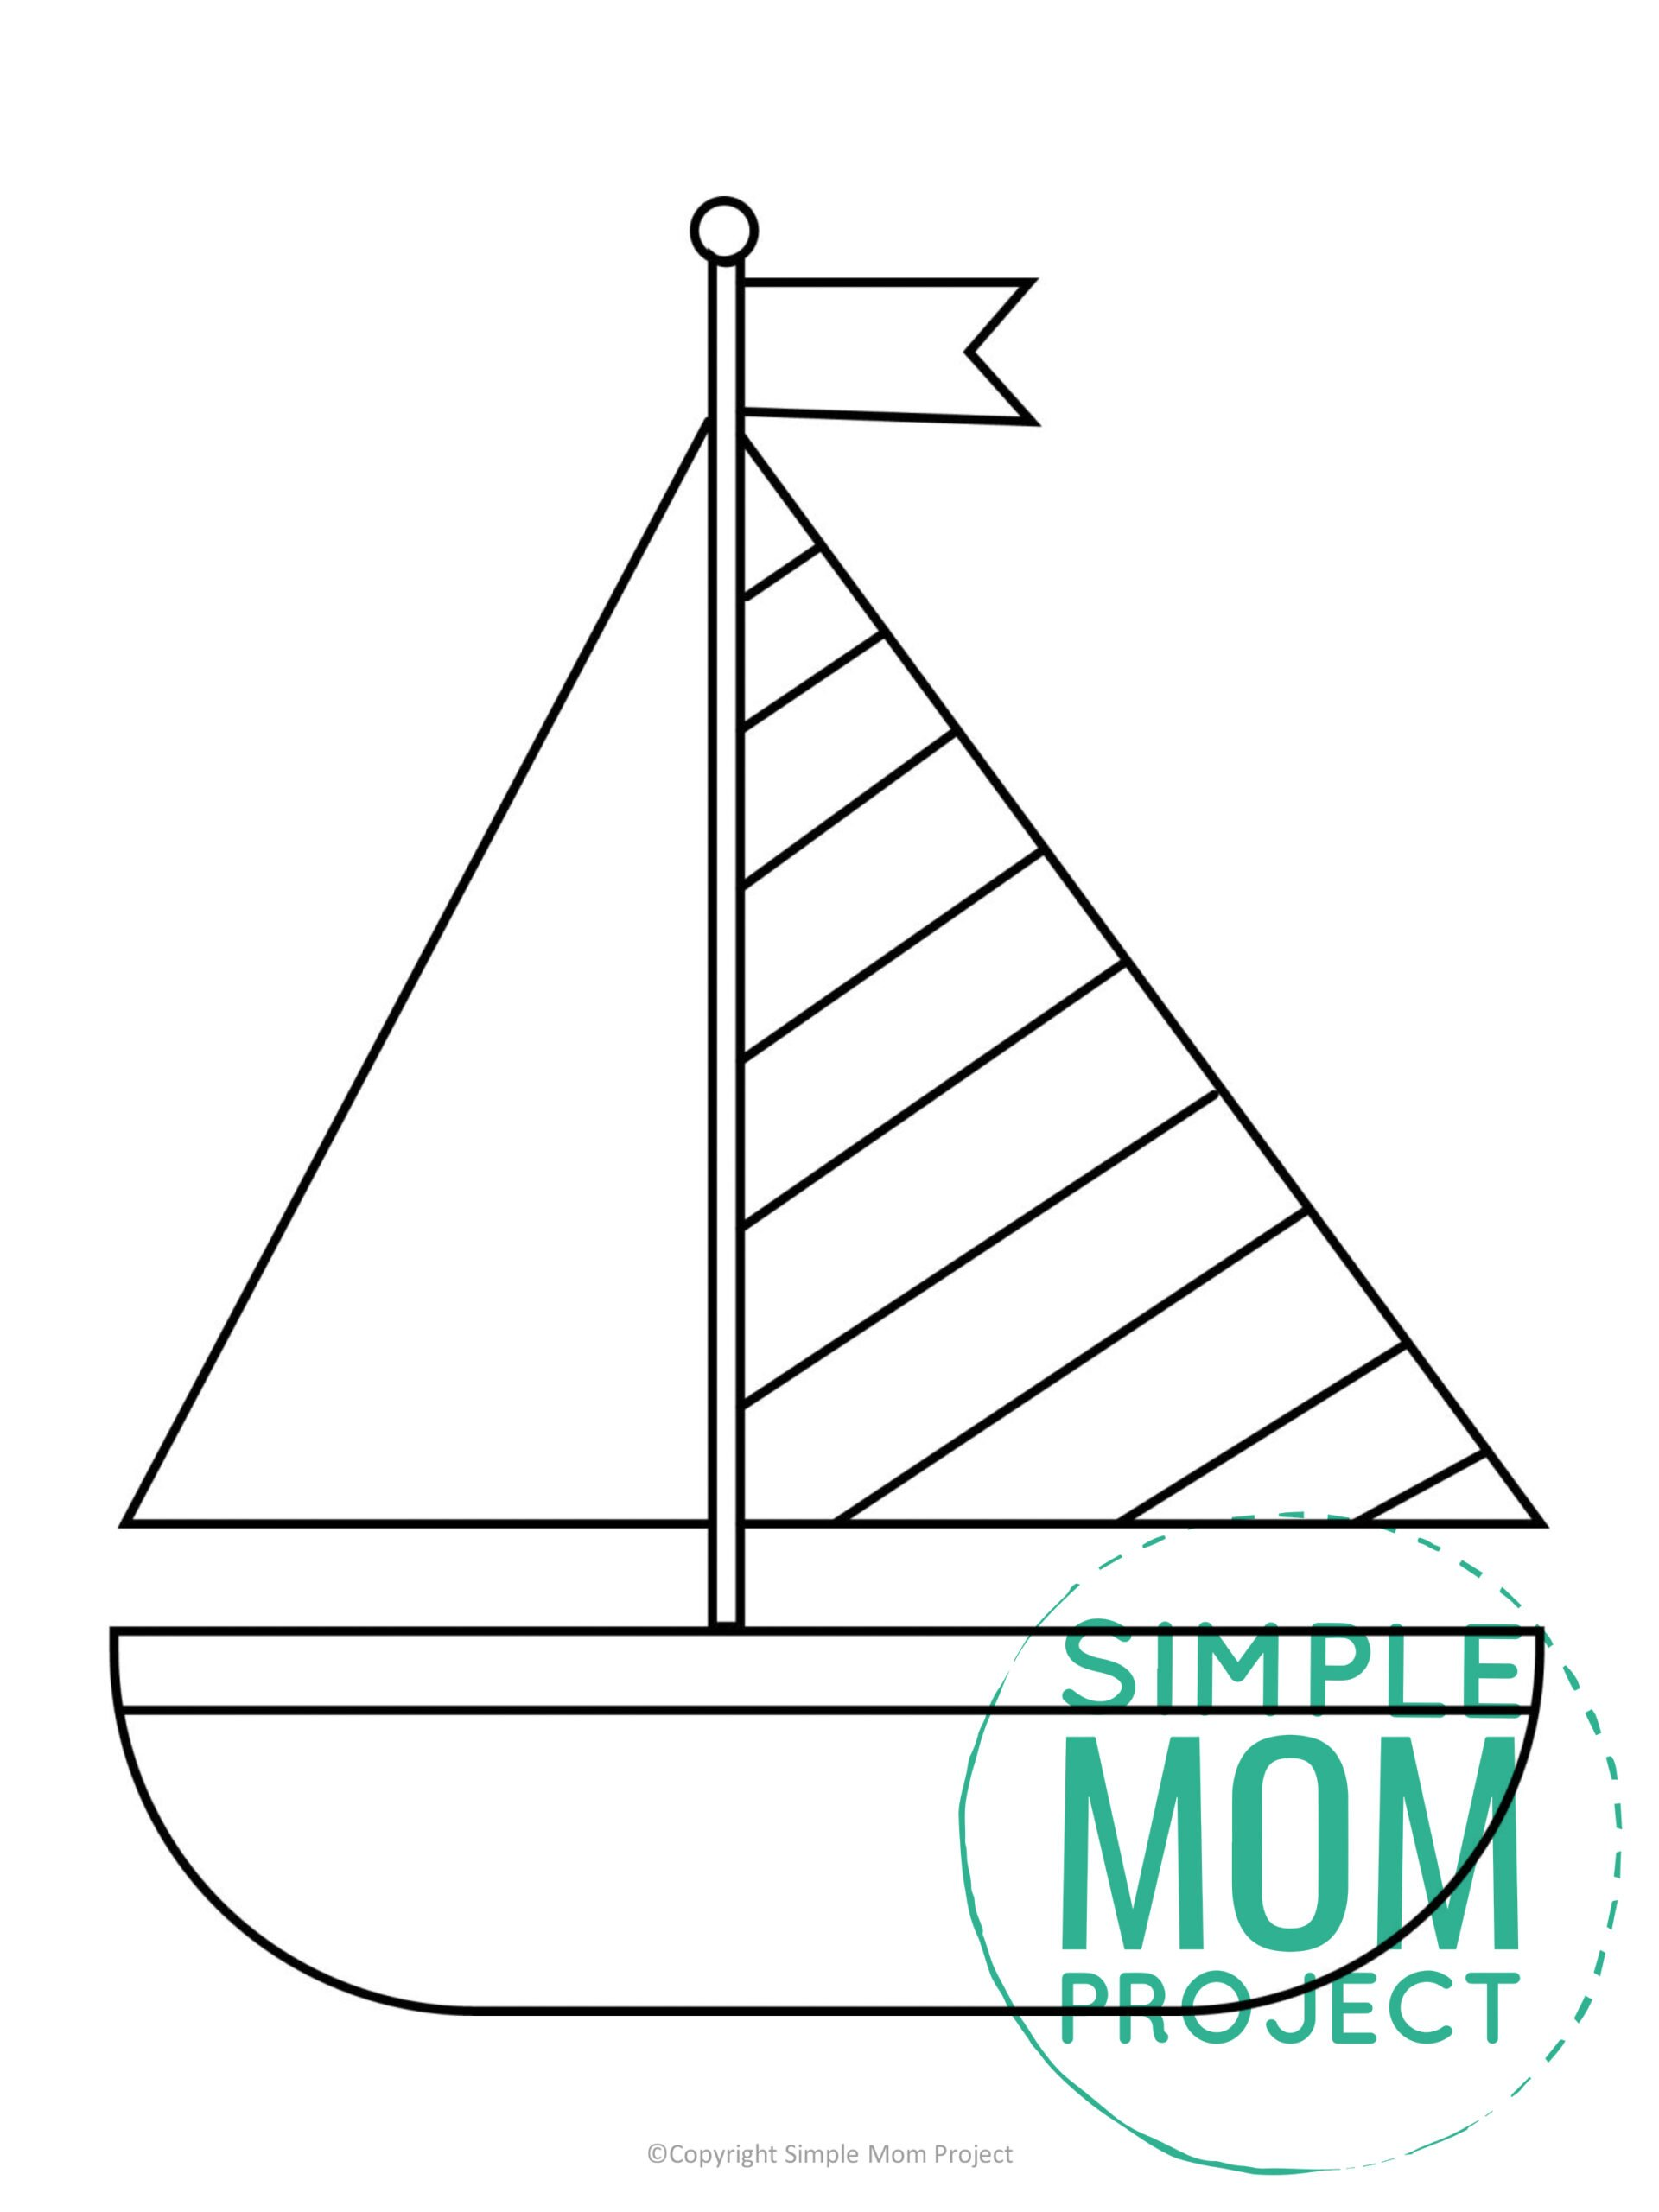 Free Printable Summer Beach Sailboat Template for Kids, preschooler and toddler